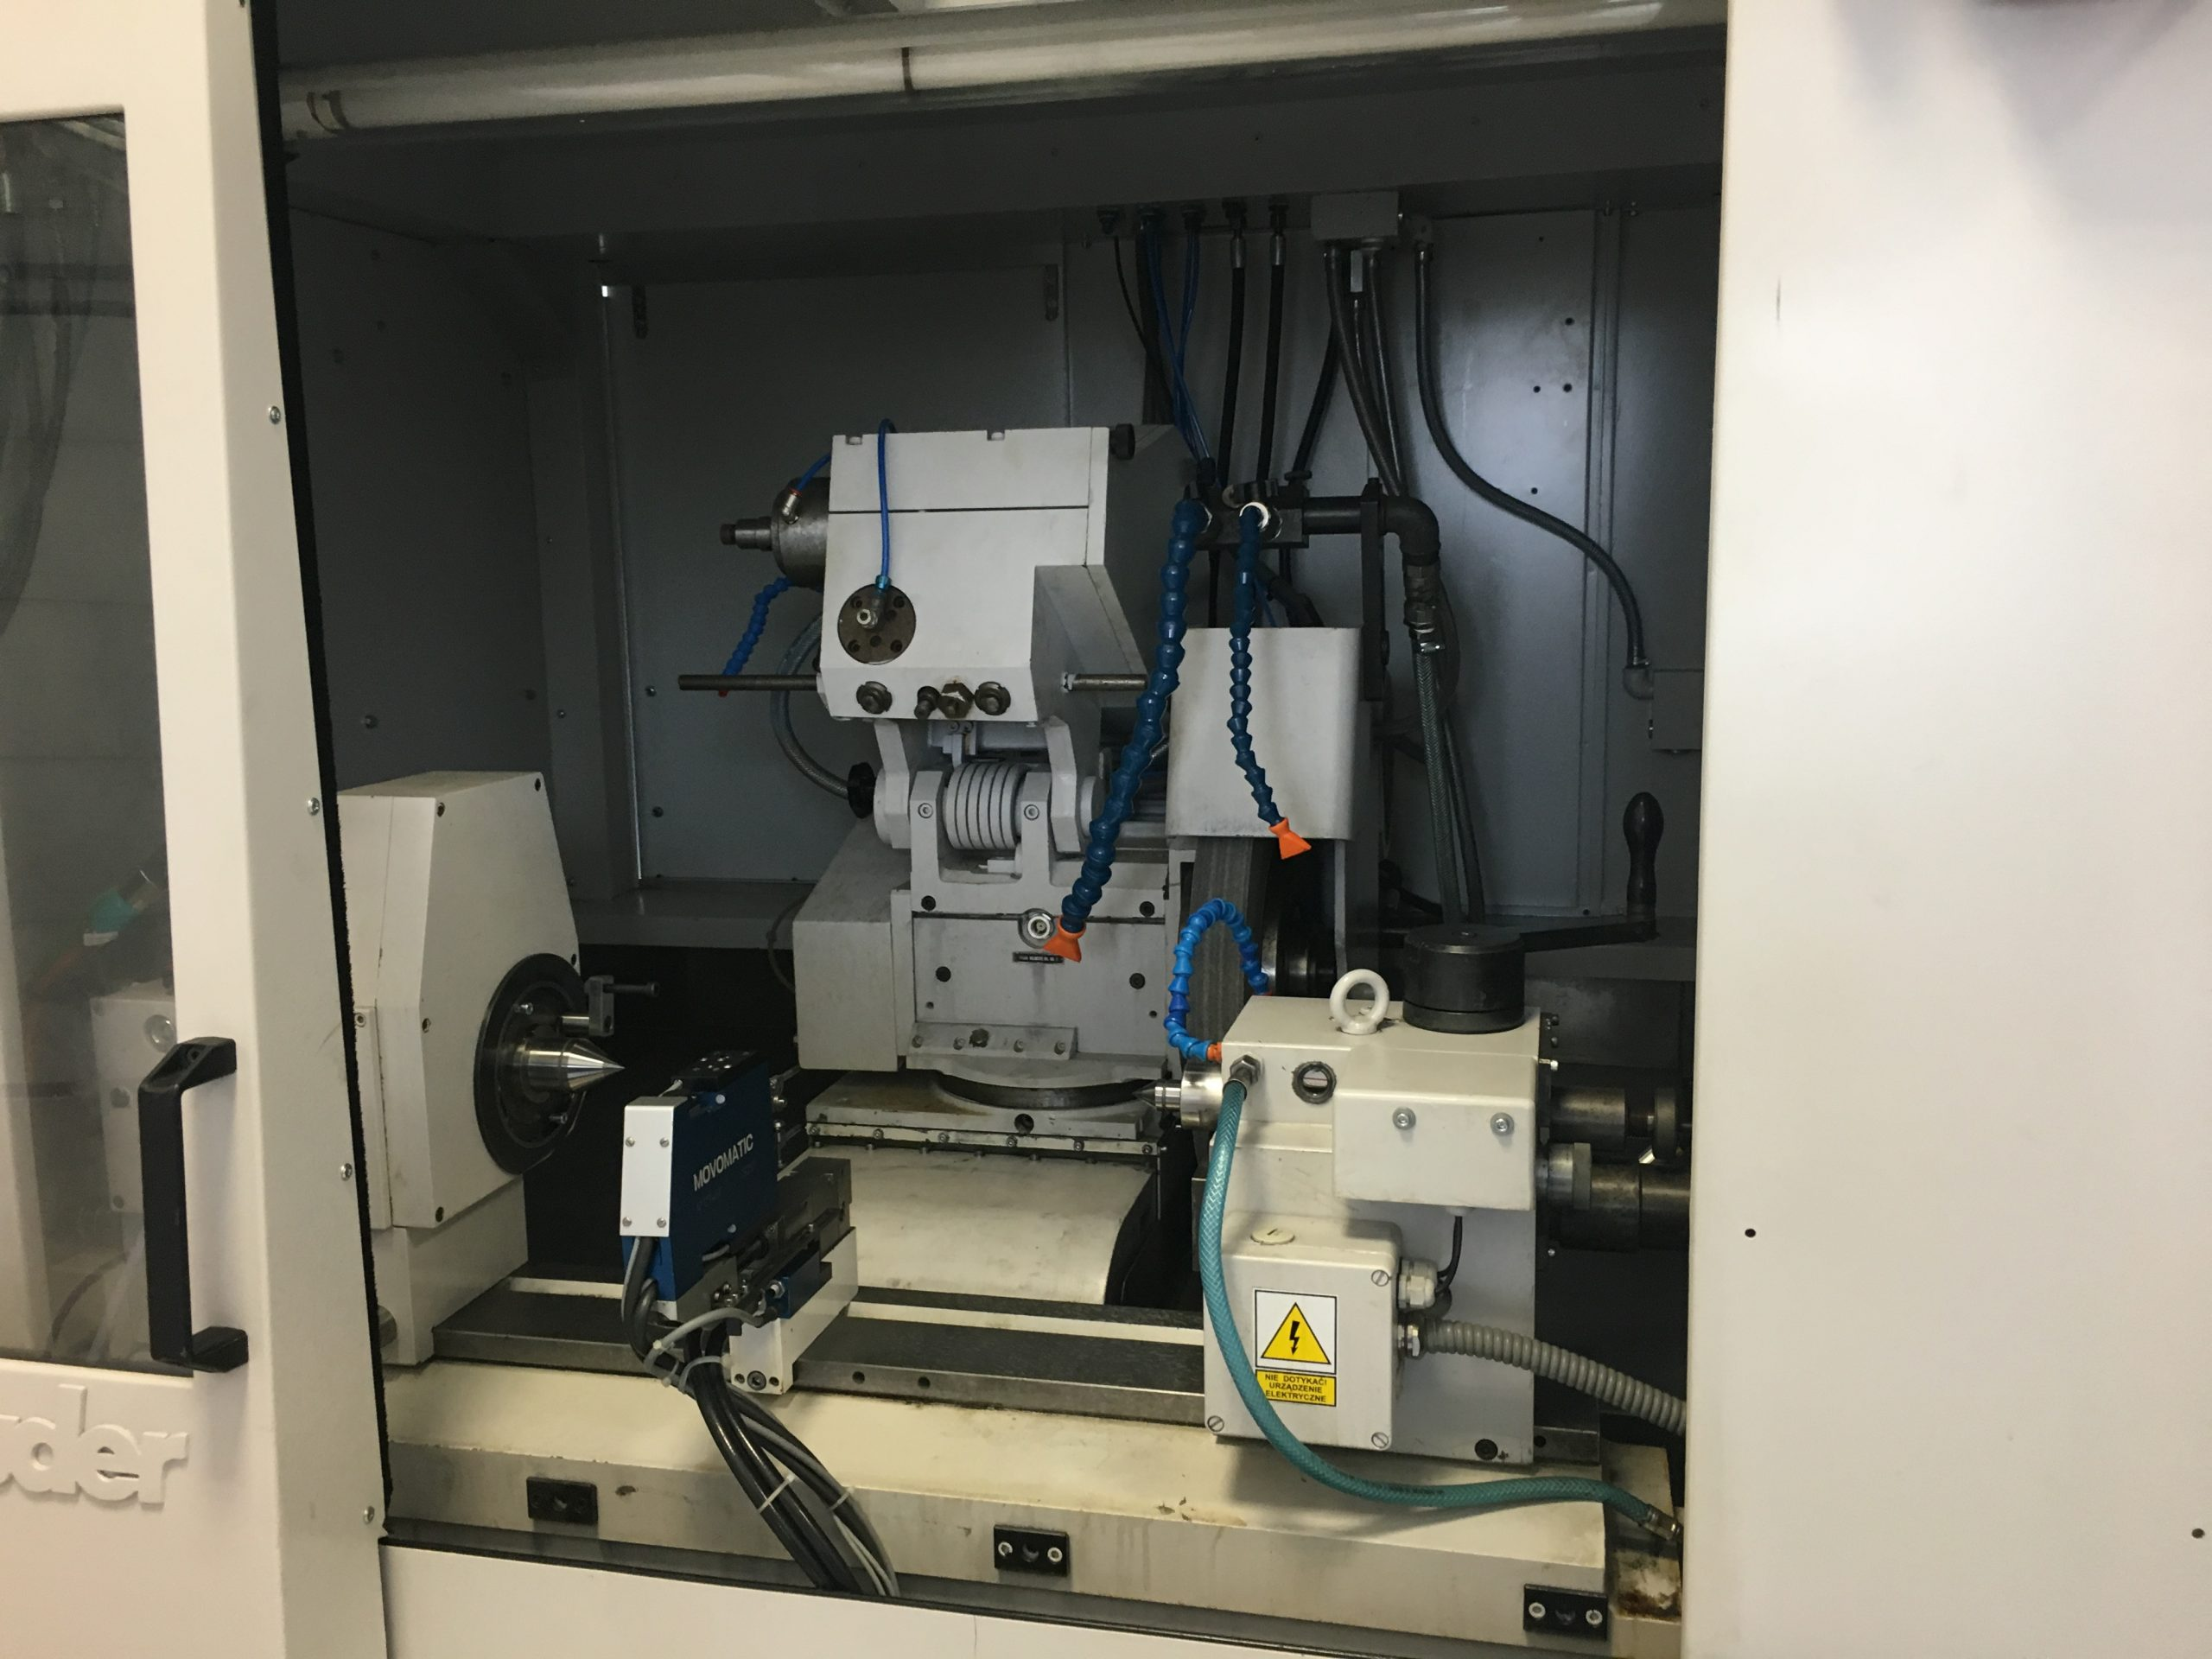 """<span  class=""""uc_style_uc_tiles_grid_image_elementor_uc_items_attribute_title"""" style=""""color:#ffffff;"""">Grinding machine STUDER S35 with Movamatic - measurement and control system. Retrofitting based on control system SINUMERIK 828.  </span>"""